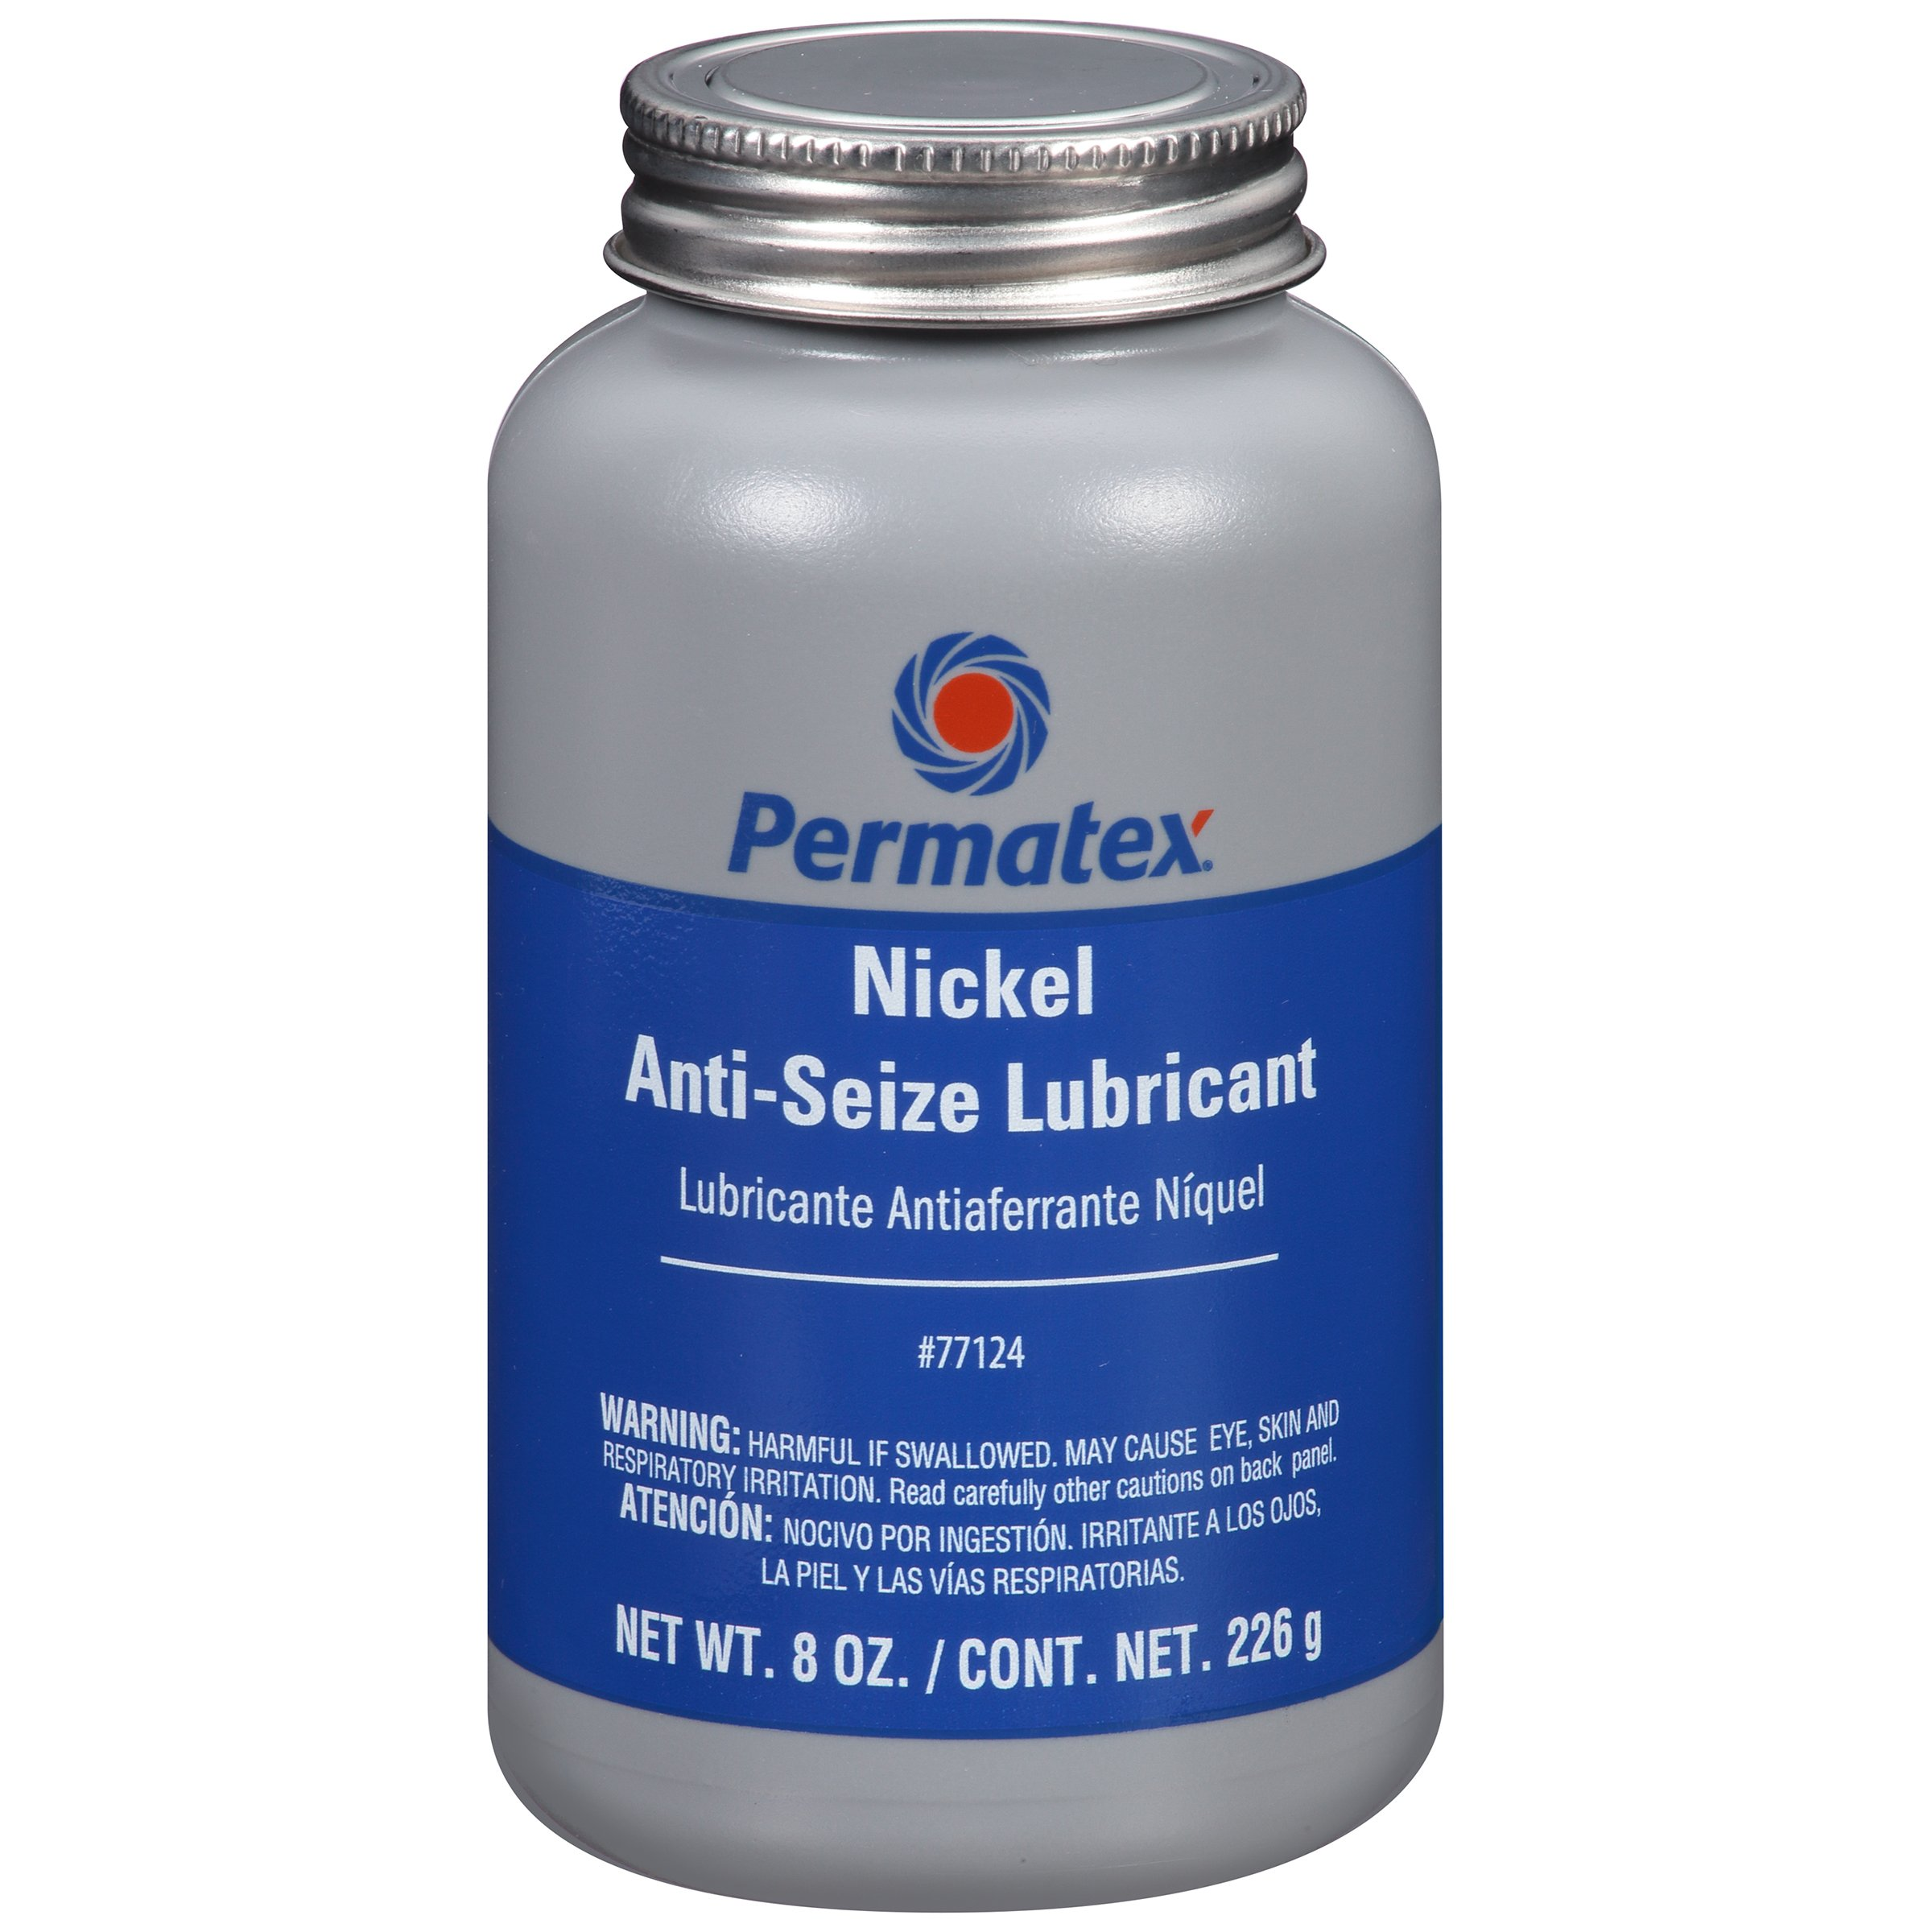 Permatex 77124-12PK Nickel Anti-Seize Lubricant, 8 oz. (Pack of 12) by Permatex